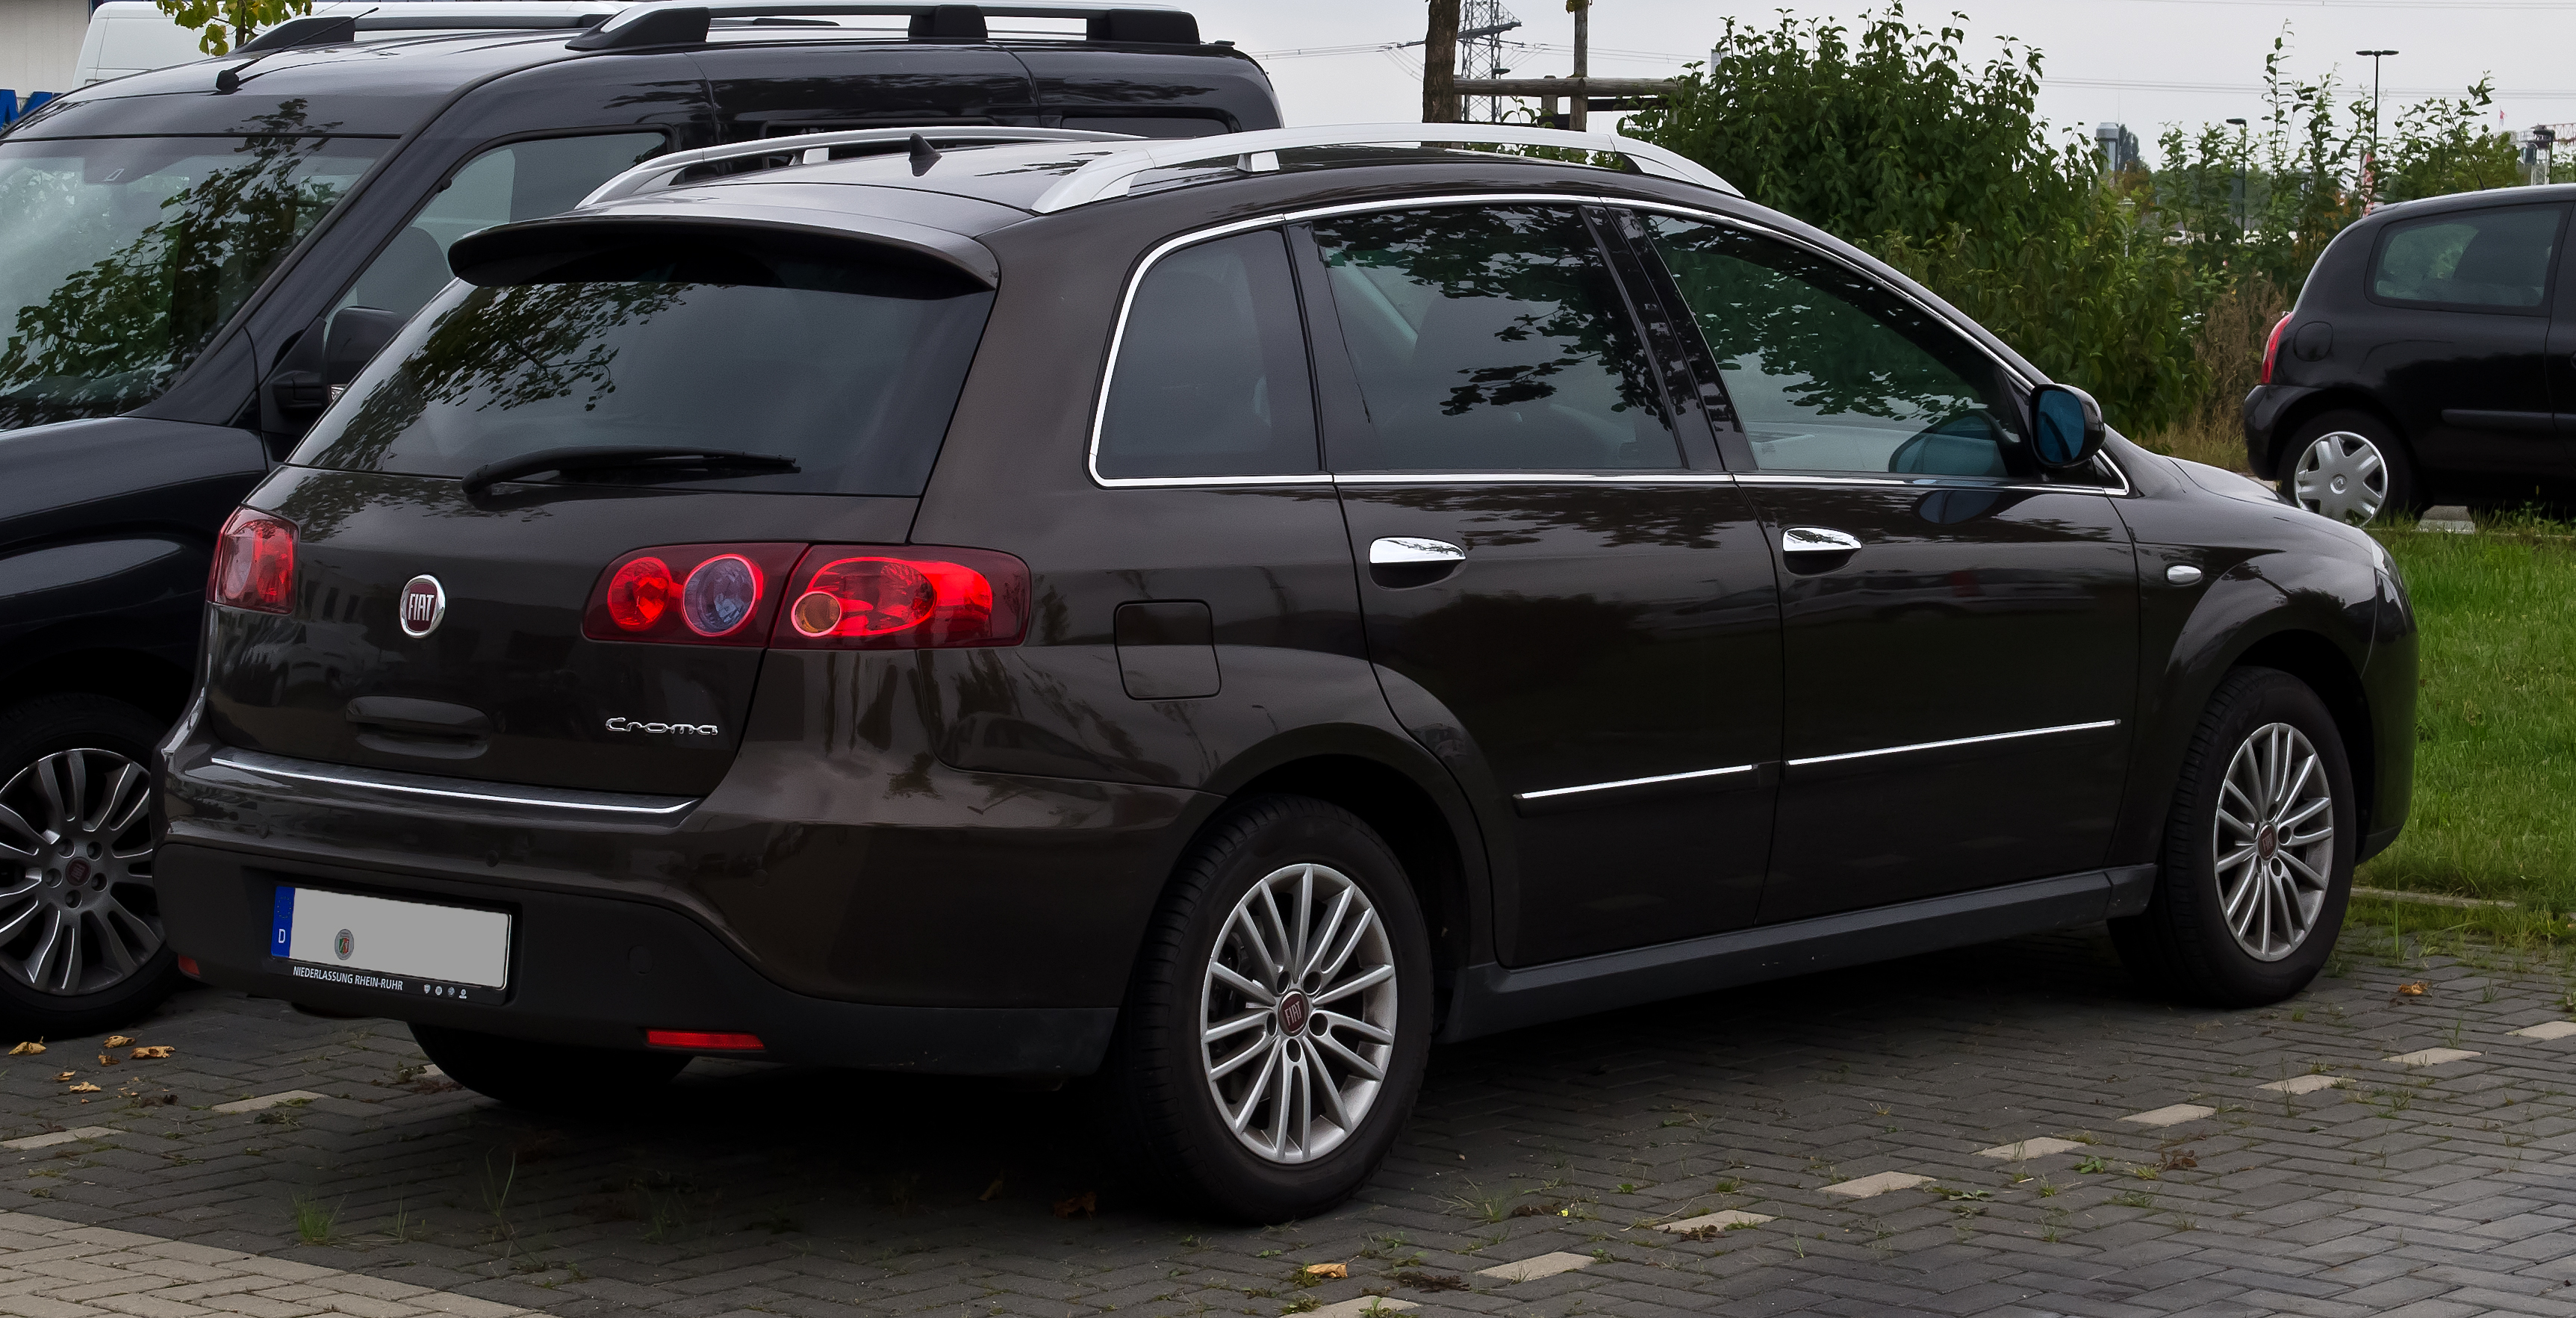 File:Fiat Croma (II, Facelift) – Heckansicht, 17 ...